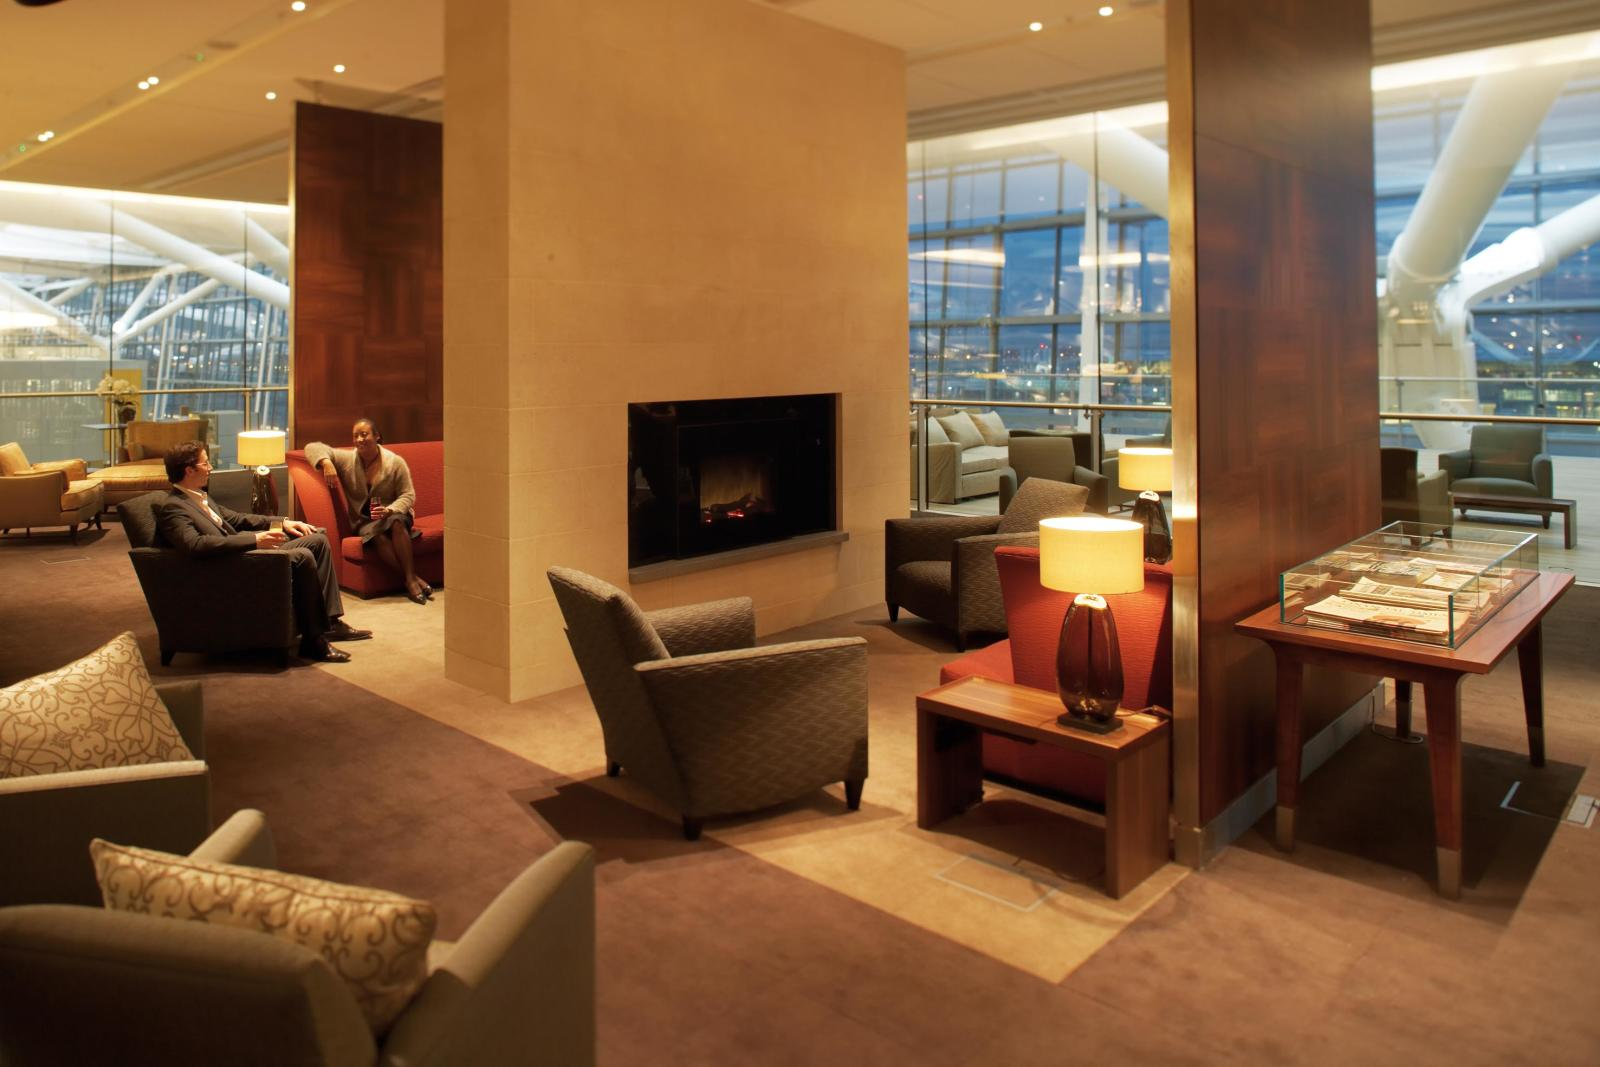 British Airways Lounges at London Heathrow: The Ultimate Guide-post-image